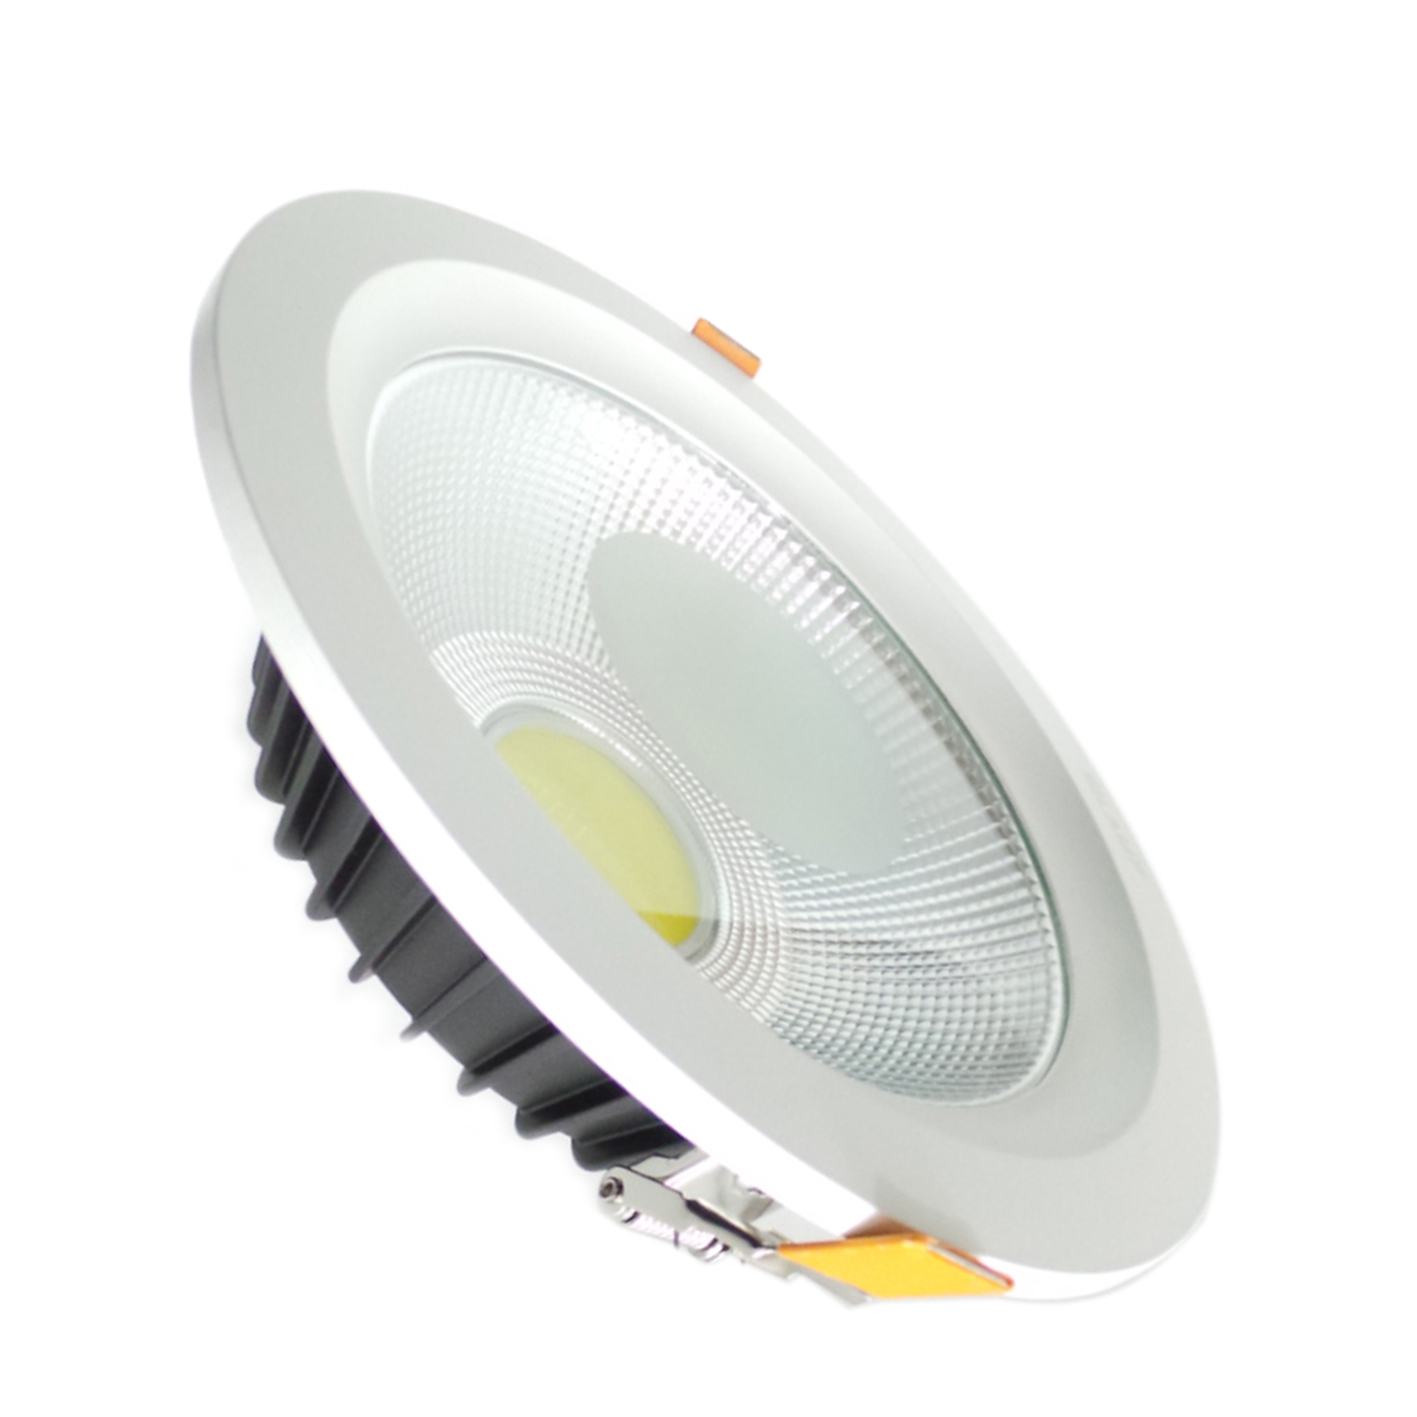 Spotlight LED recessed 40W round led lights recessed cob with springs and driver included